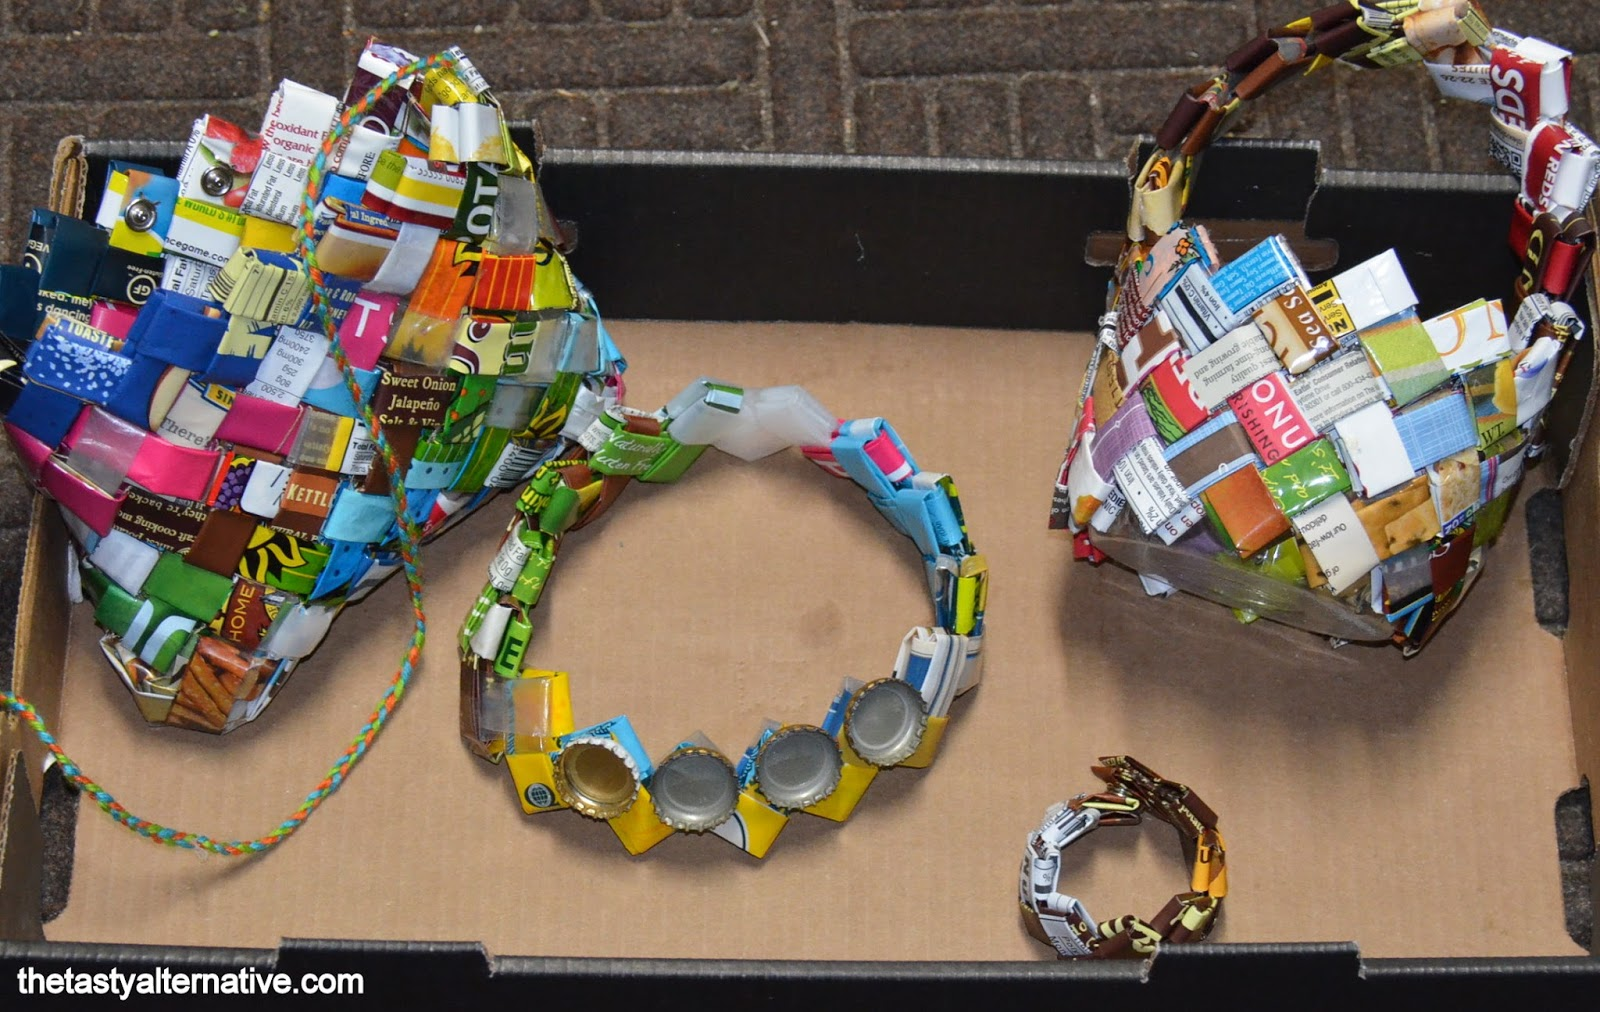 Waste material activity arts and crafts project ideas for Waste material activity